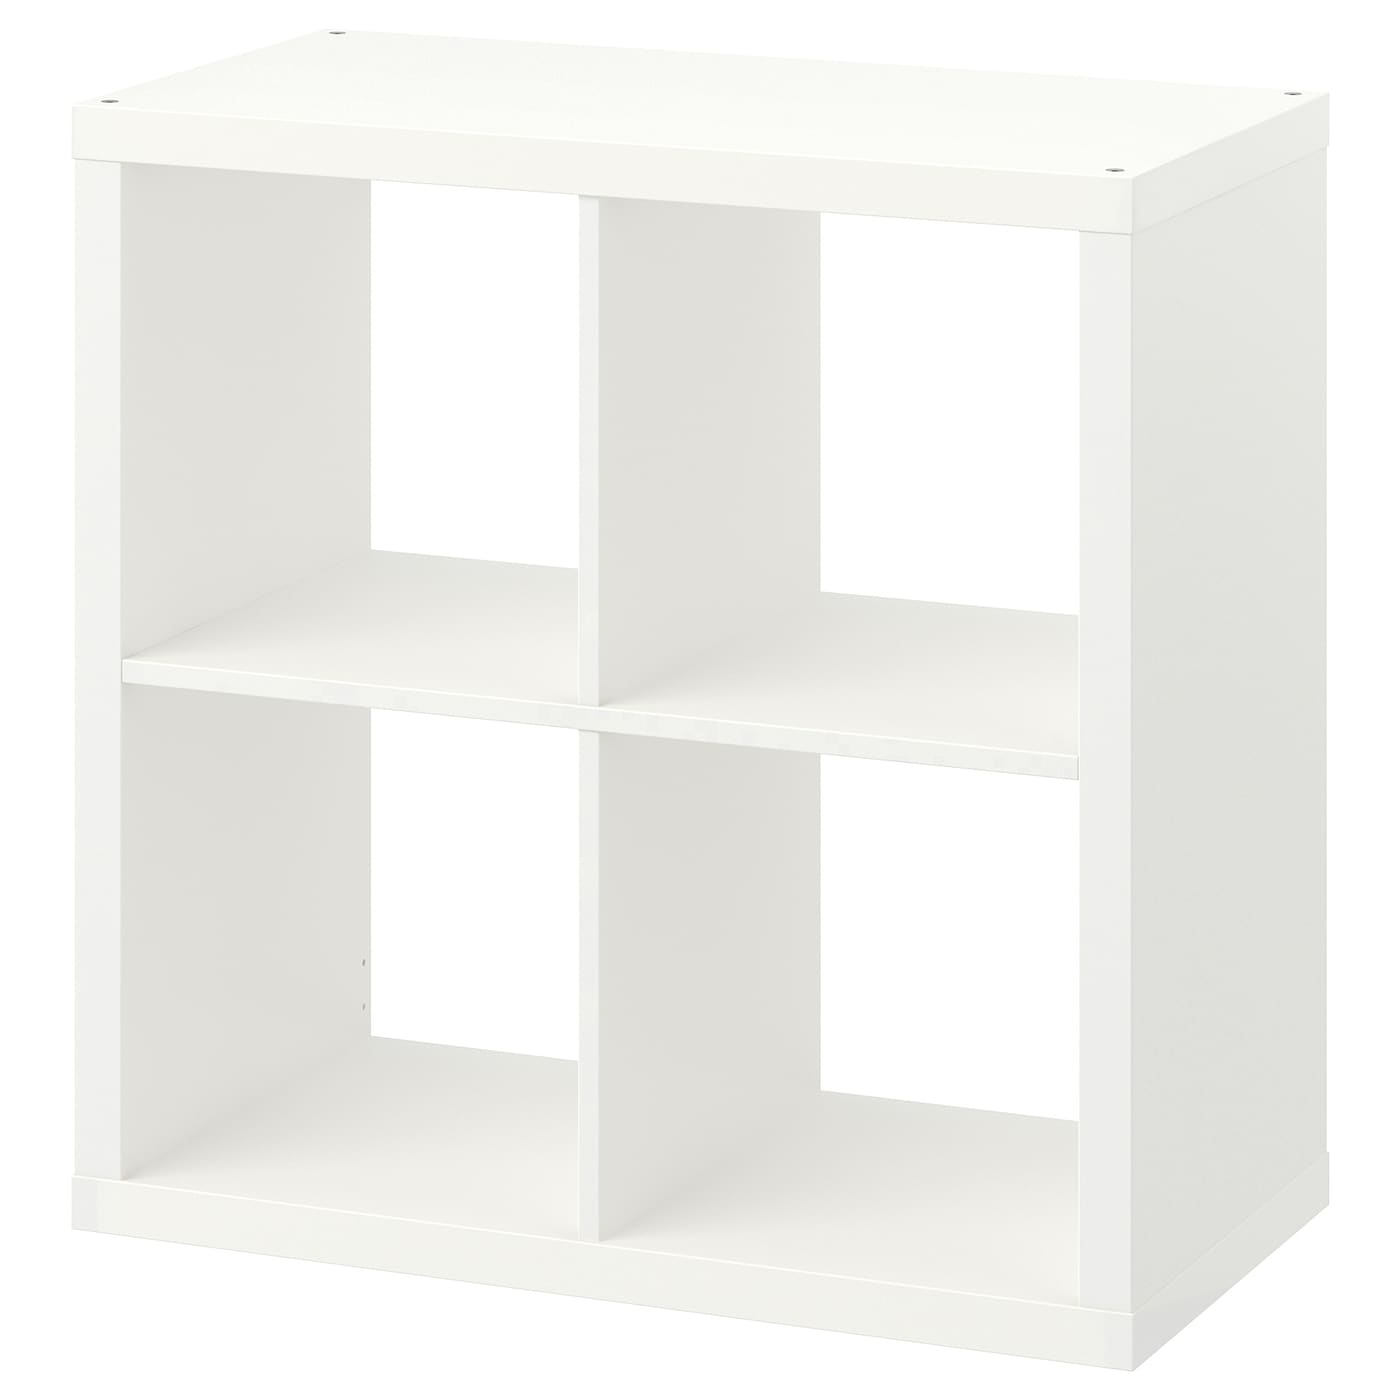 IKEA KALLAX shelving unit Choose whether you want to hang it on the wall or stand it on the floor.